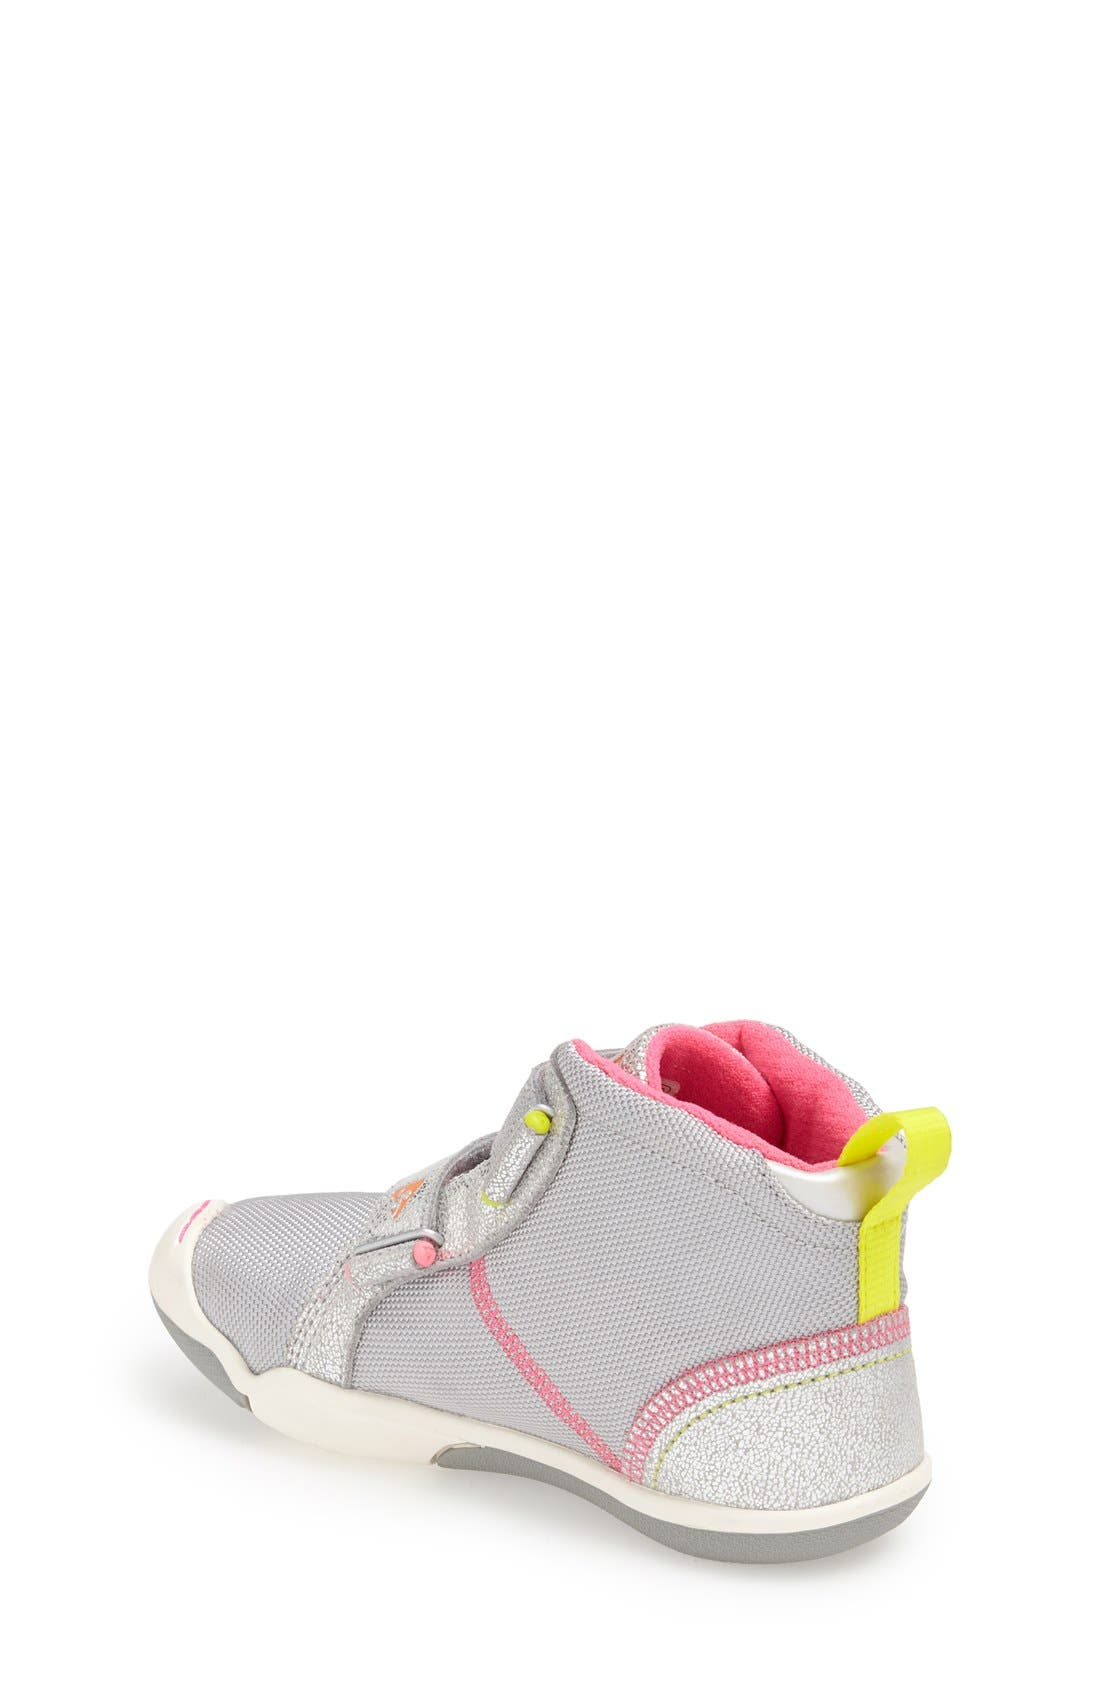 Alternate Image 2  - PLAE 'Max' Customizable High Top Sneaker (Toddler & Little Kid)